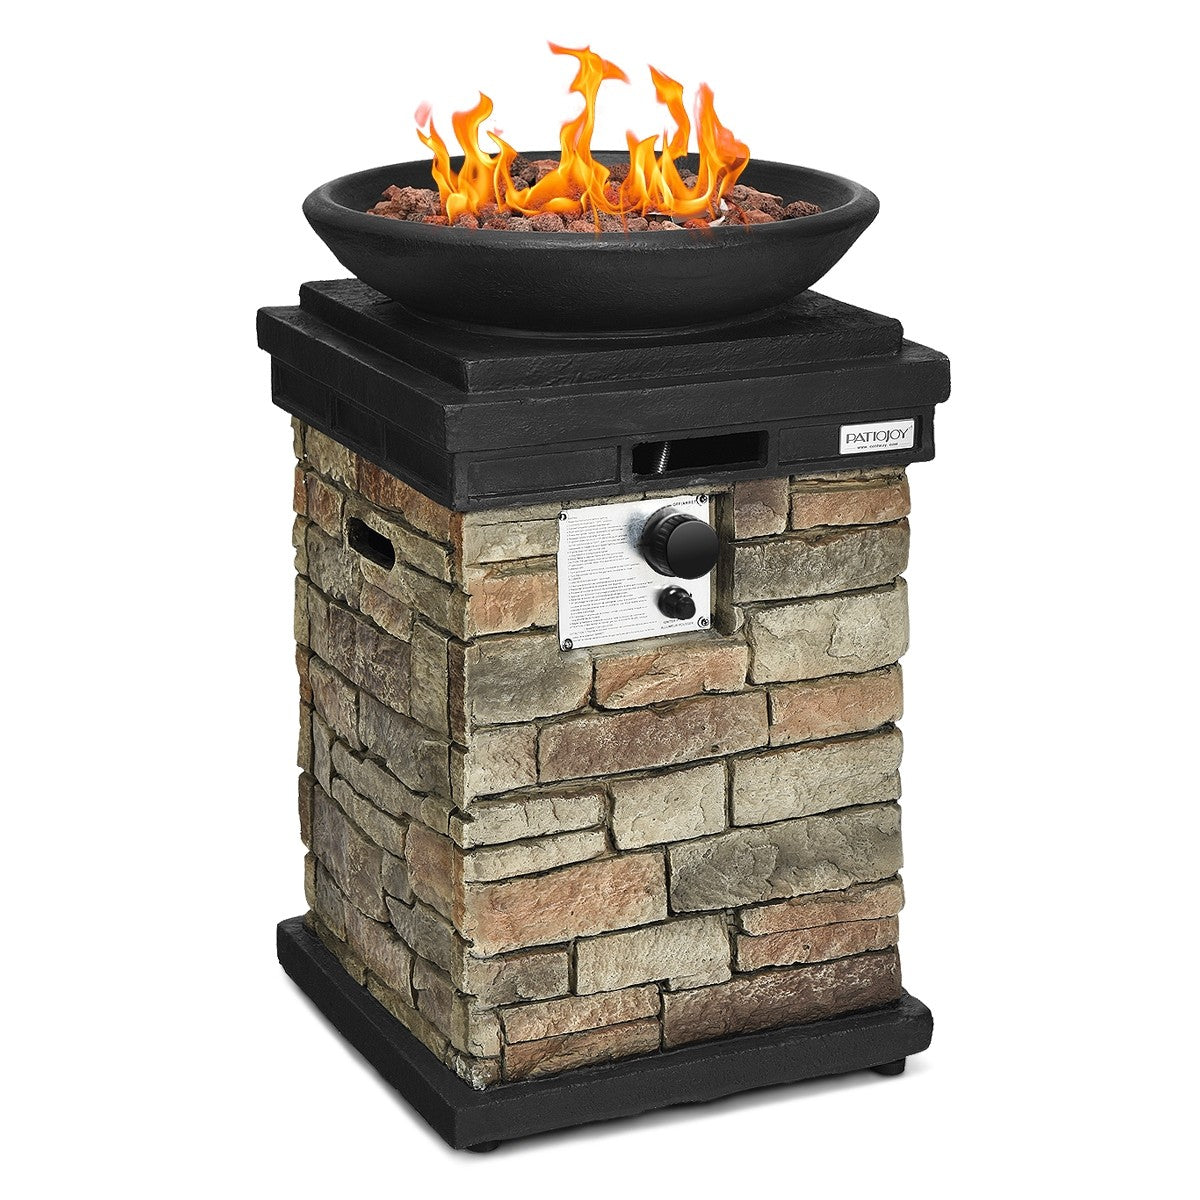 Outdoor Propane Burning Fire Bowl Column Realistic Look Firepit Heater - Morealis